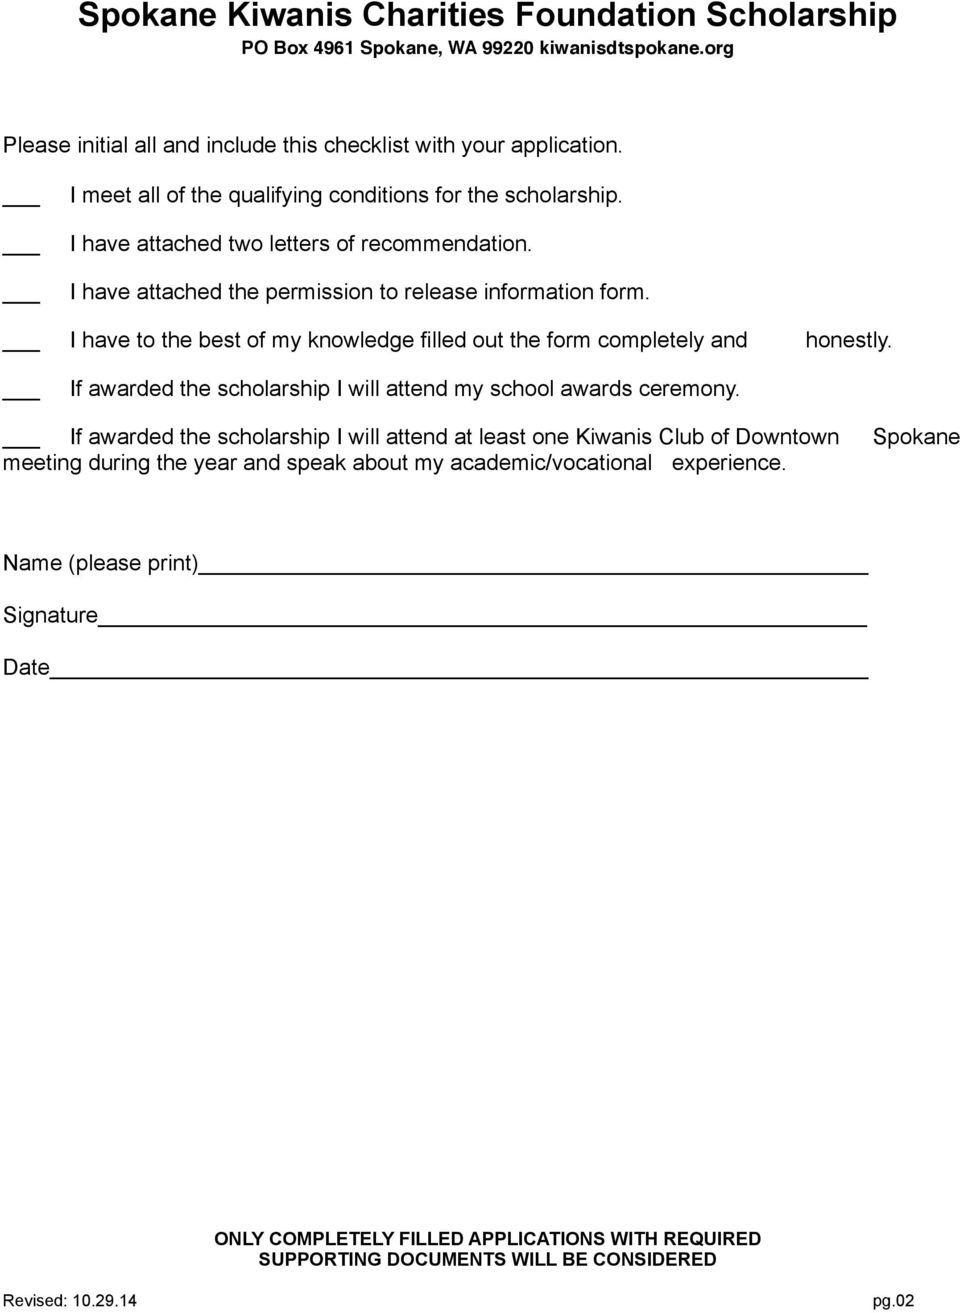 I have to the best of my knowledge filled out the form completely and honestly. If awarded the scholarship I will attend my school awards ceremony.